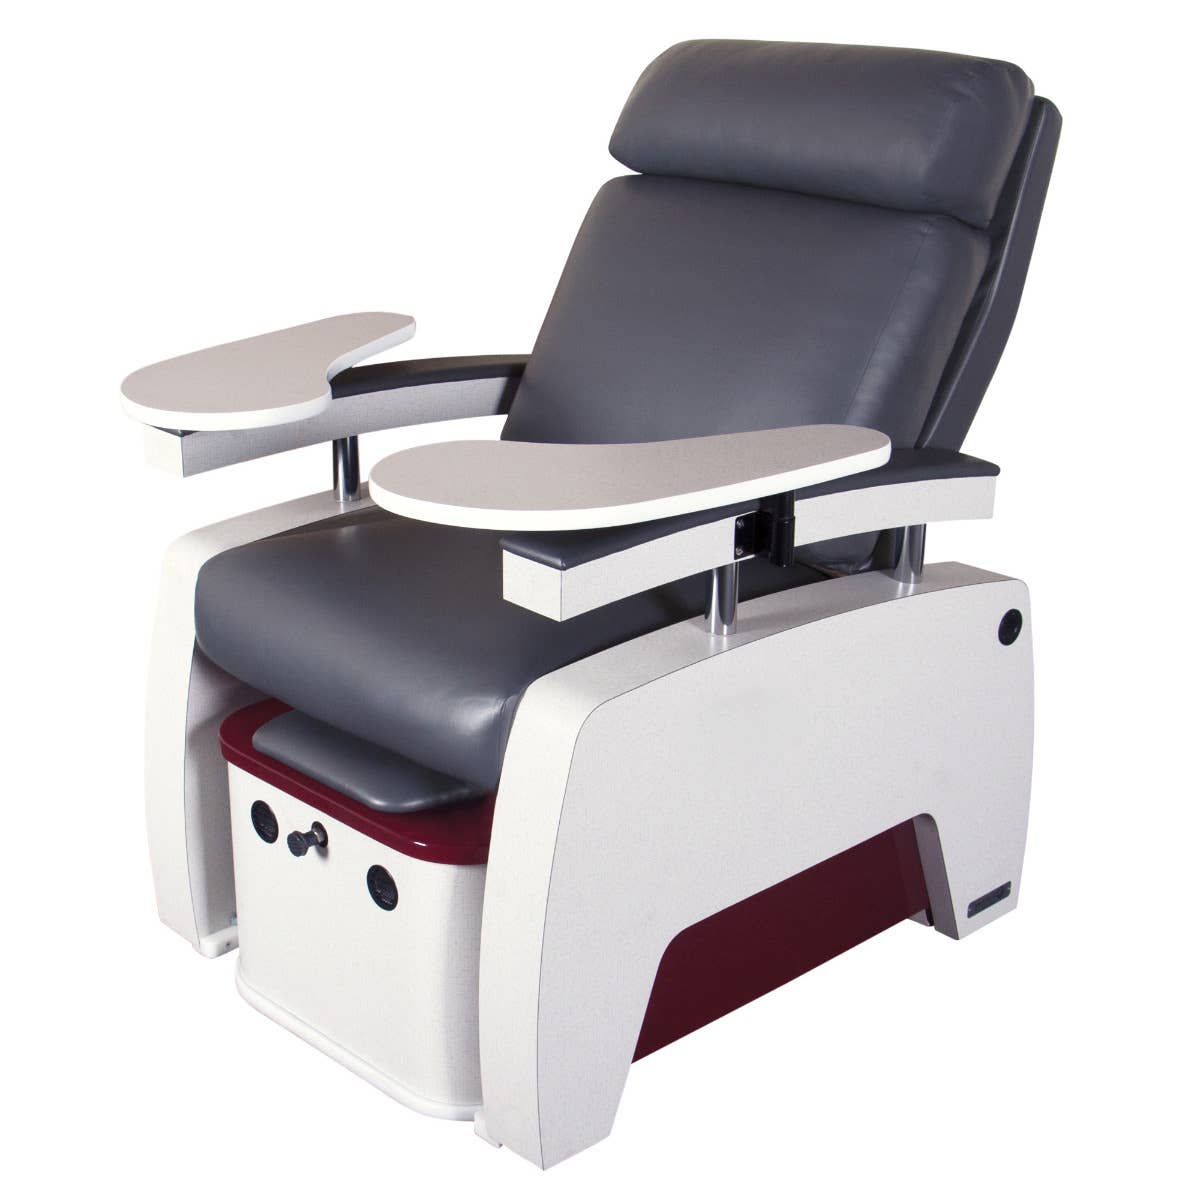 manicure-pedicure_pedicure-chairs_5th-avenue-with-plumbed-footbath_05